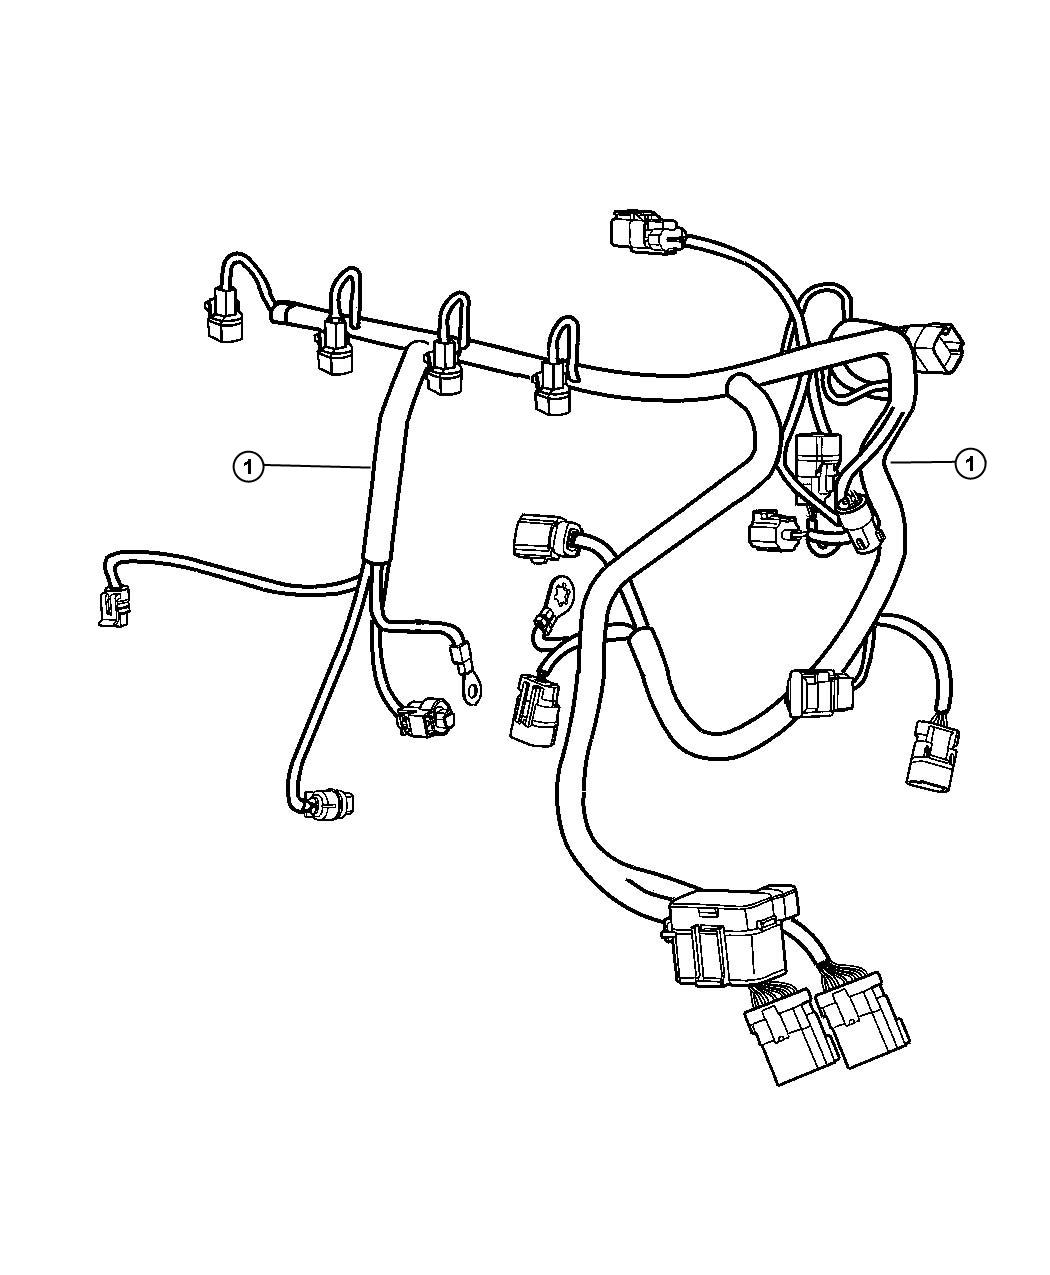 [DIAGRAM] 1997 Dodge Neon 2 0l Sfi Sohc 4cyl Wiring